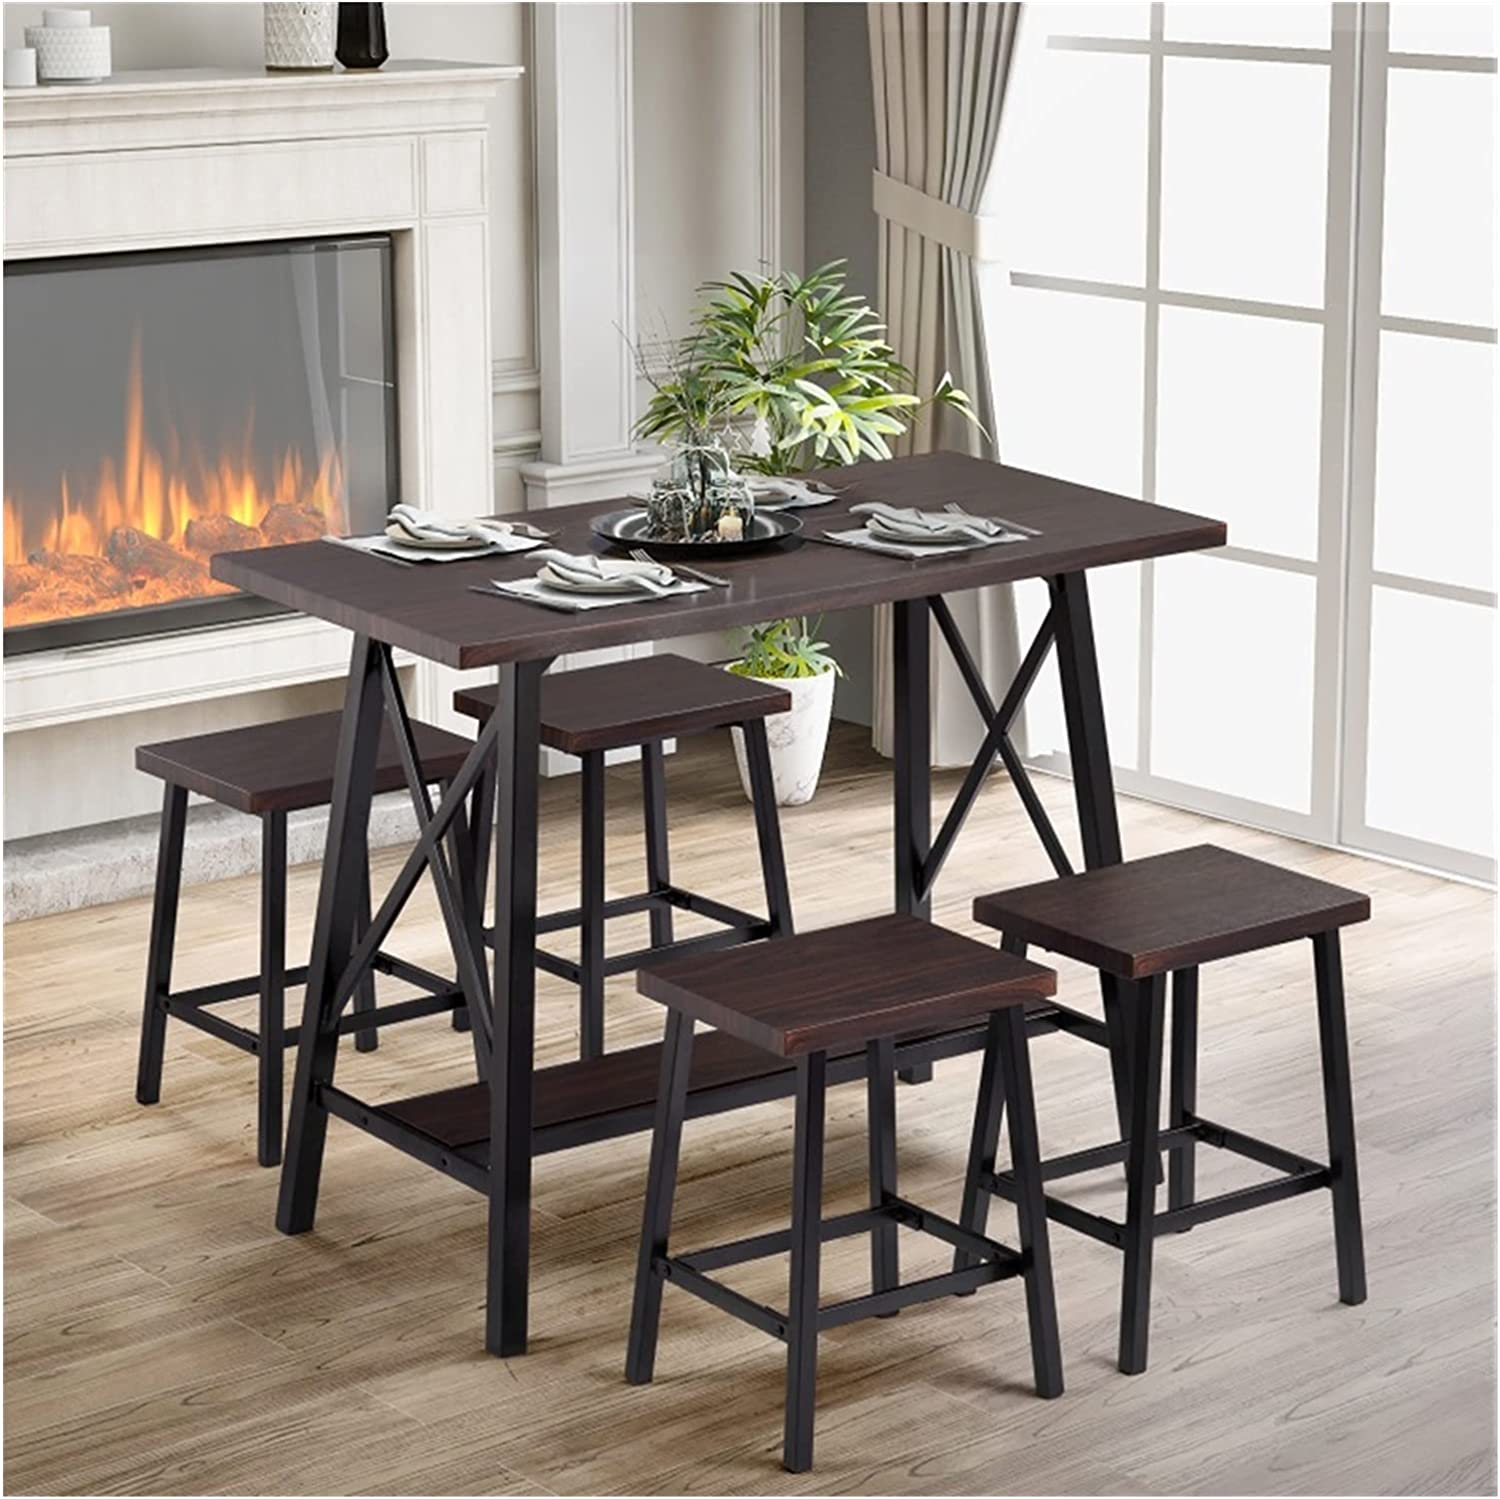 5-Piece Bar Table Max 89% OFF Set Modern Counter with Ba 4 Height Popular products